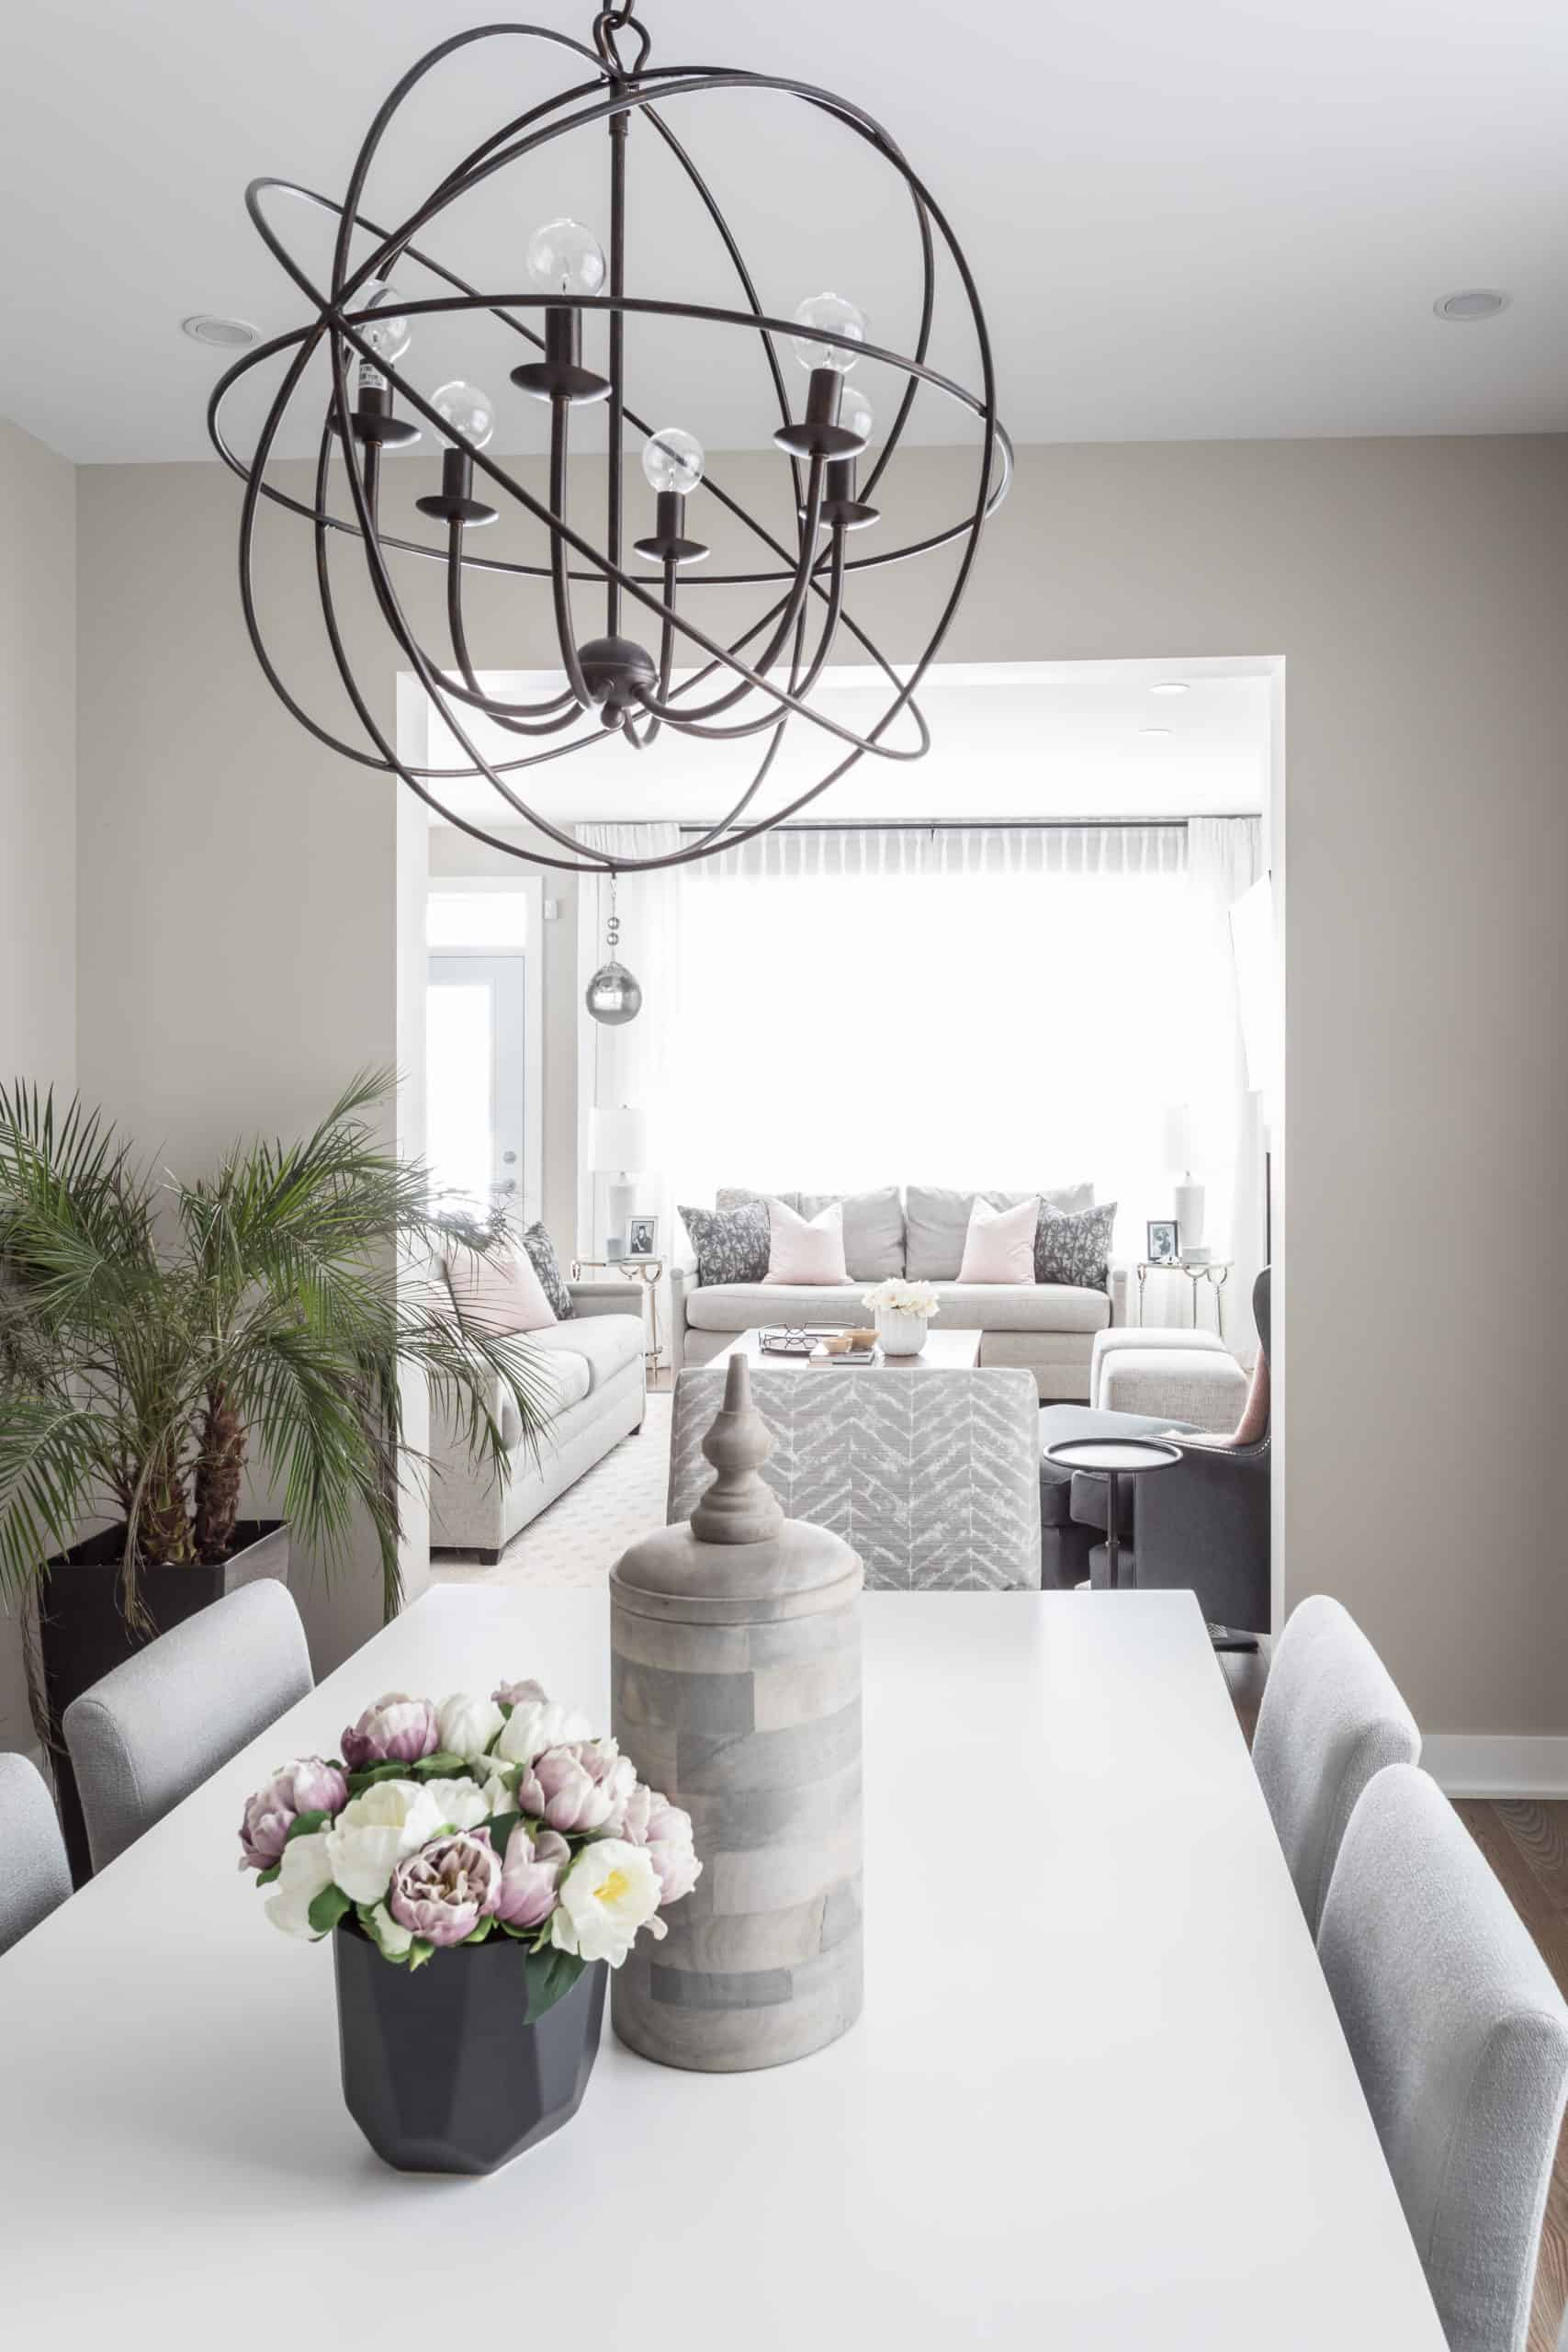 Small dinner table with a spherical chandelier above it